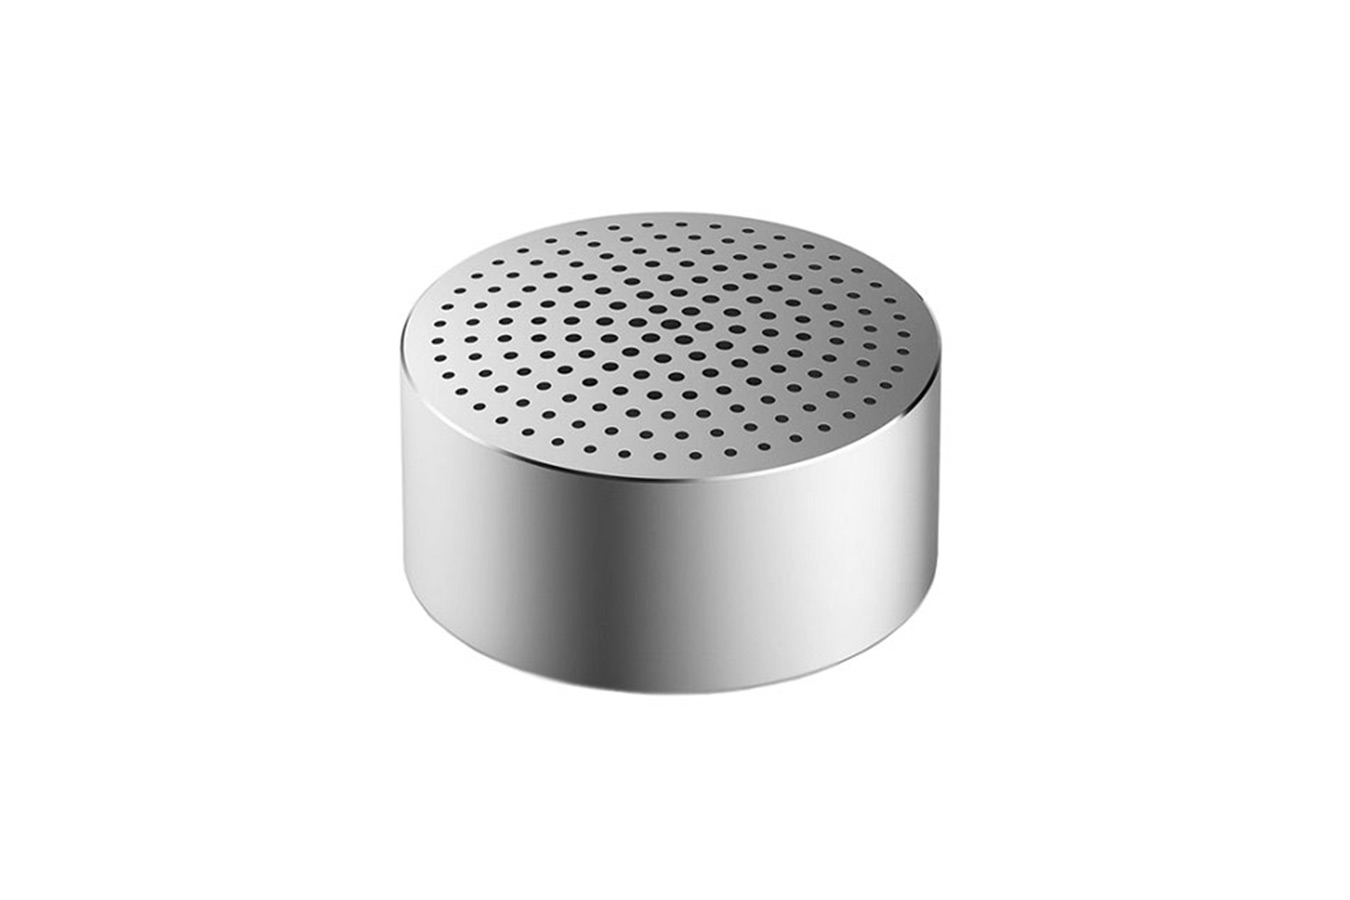 Портативная колонка Xiaomi Mi Portable Round Box Bluetooth Speaker серебристая